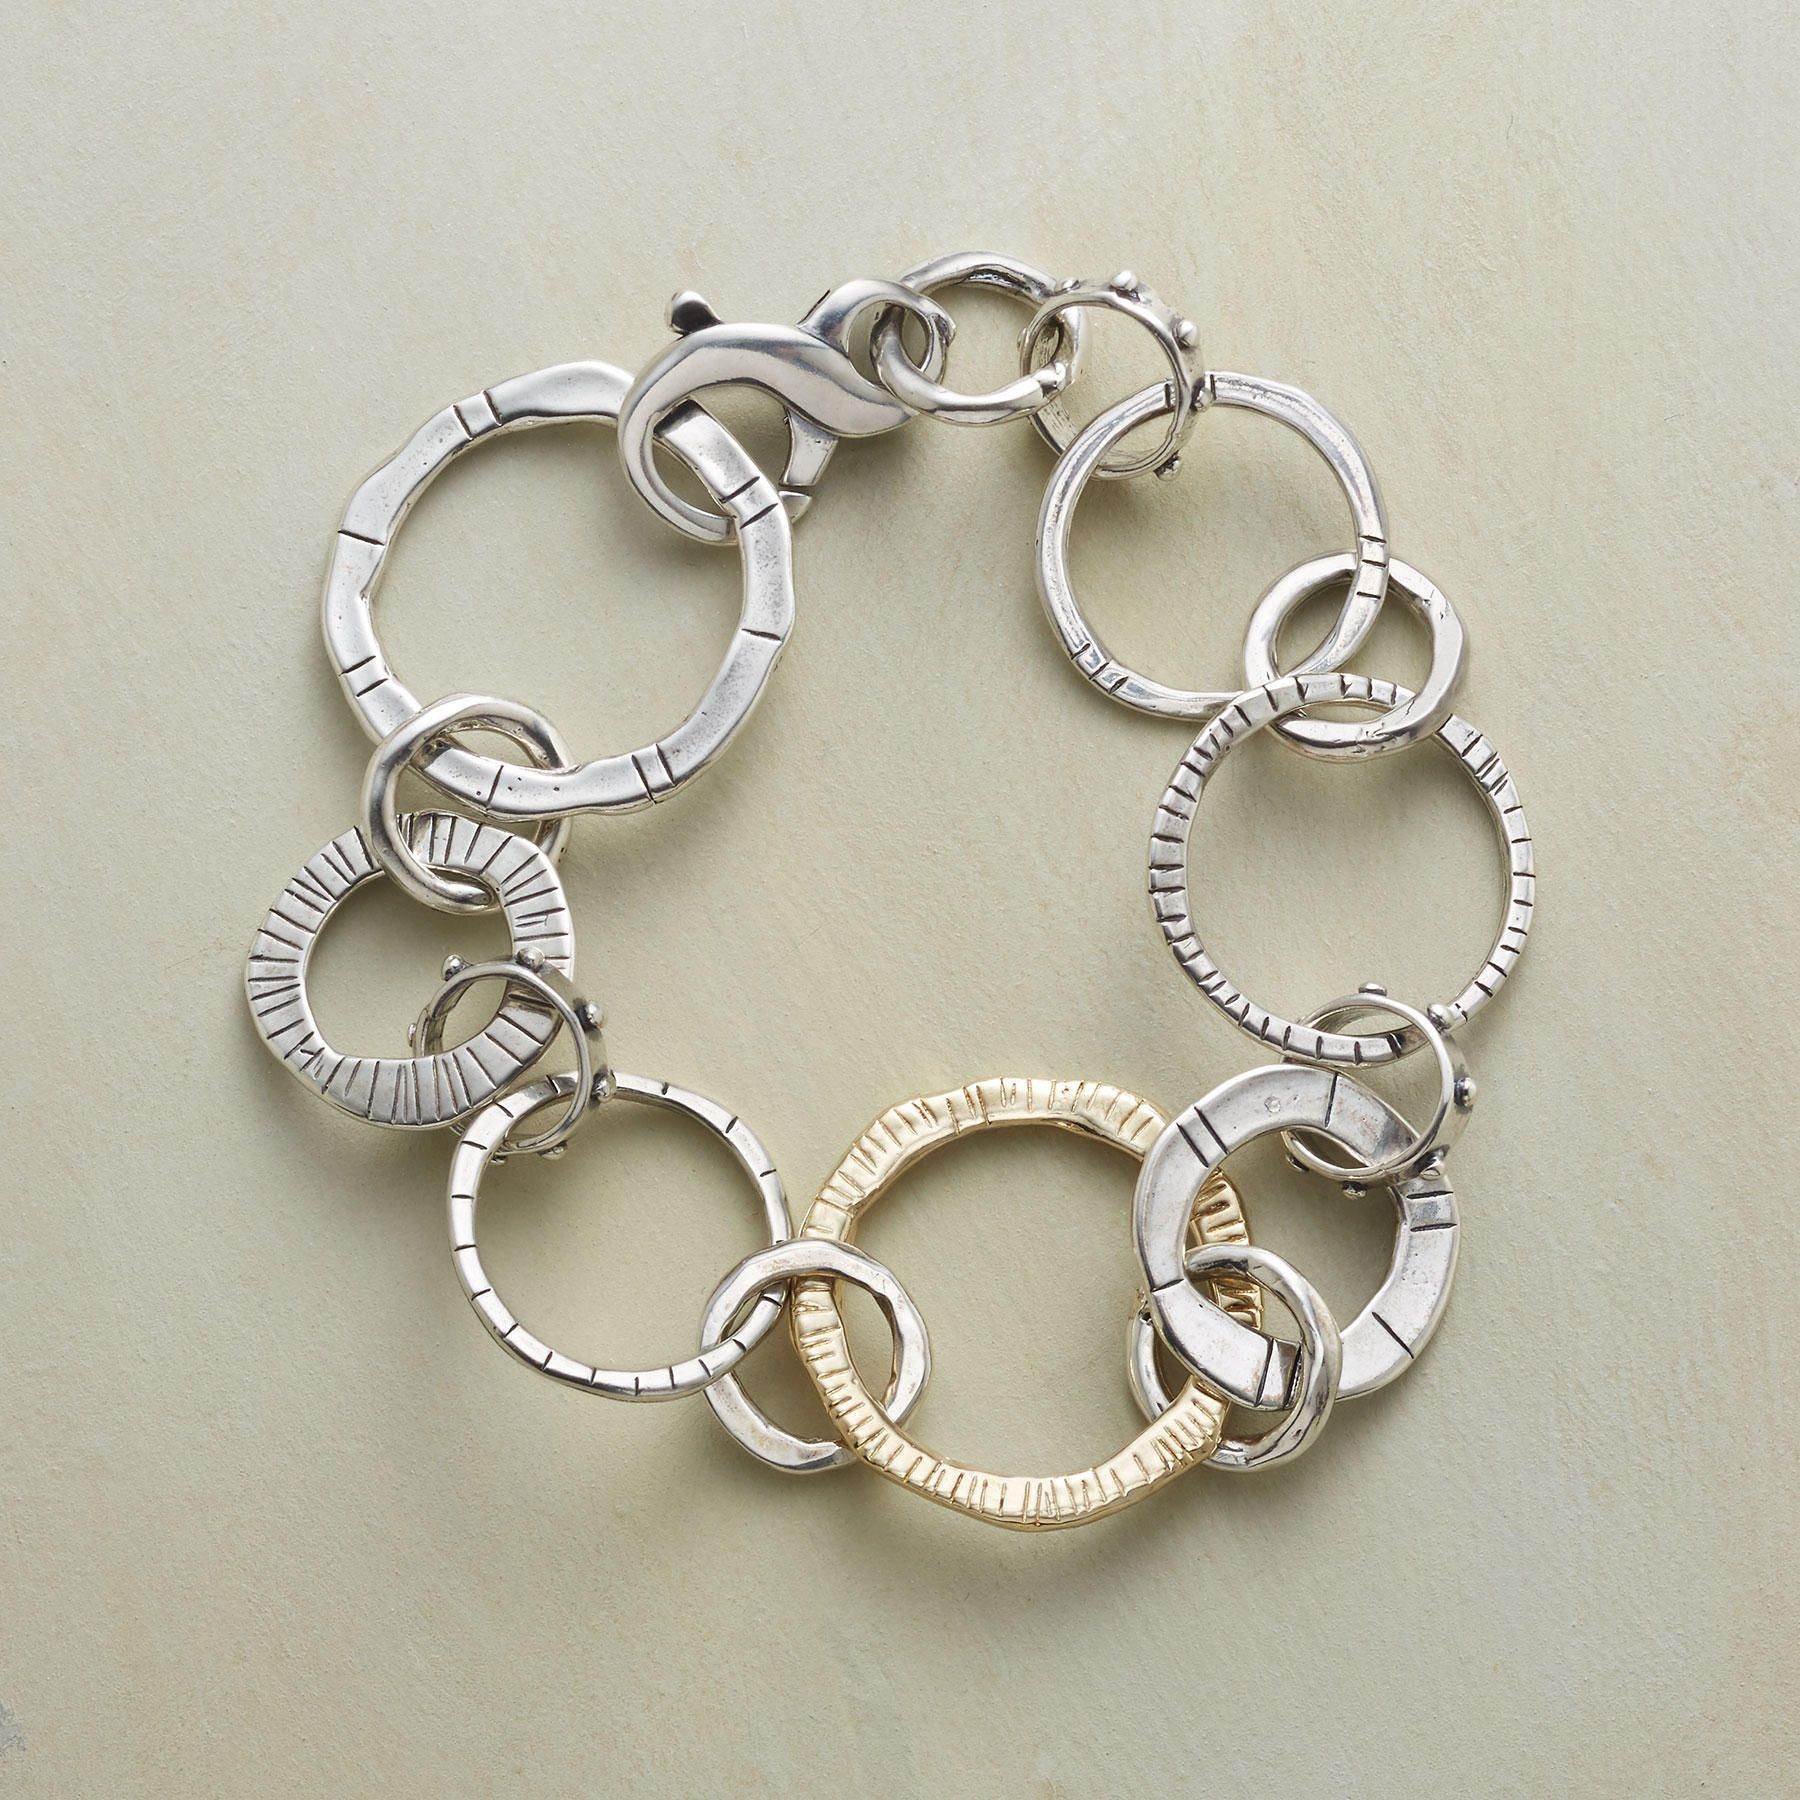 Linear rings bracelet the handcast rings in this bracelet align